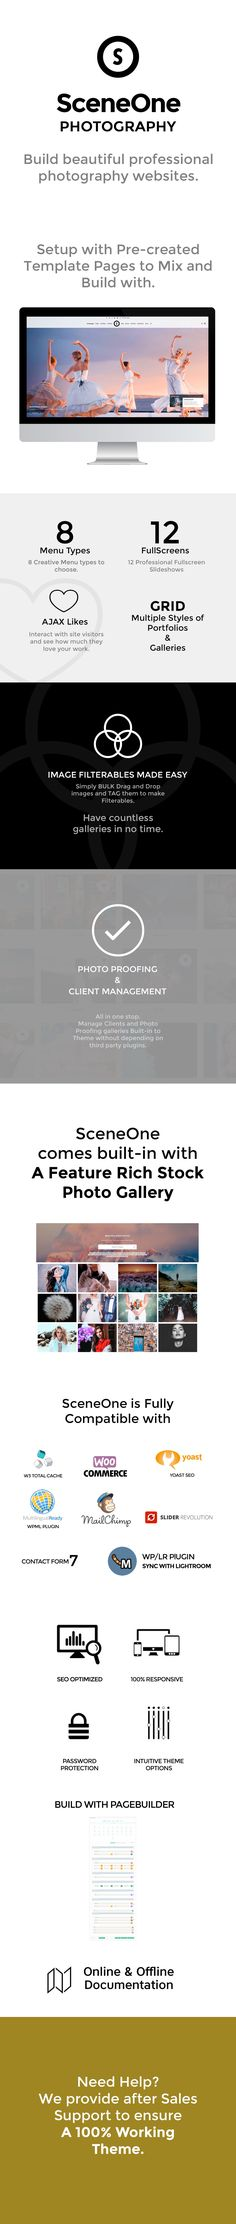 Download SceneOne | Photography Theme for WordPress (Photography)